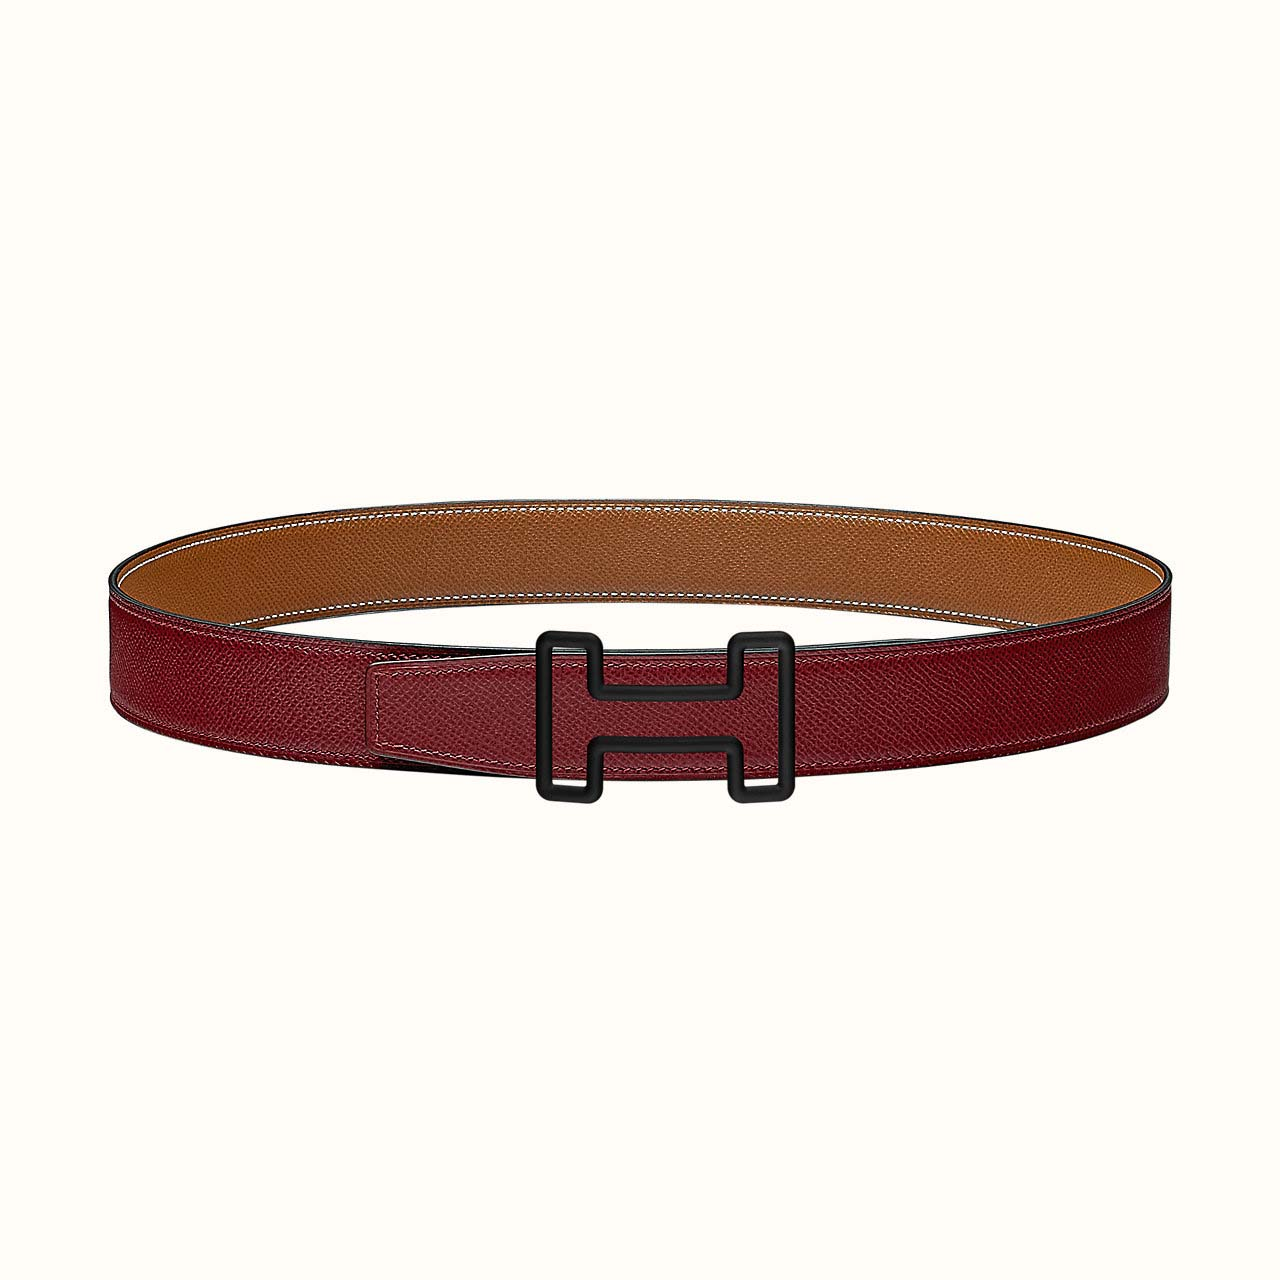 tonight-belt-buckle-reversible-leather-strap-32mm--beltkit-32-075394CAAC_composite_2-077941CY89_front_1-307-0-1280-1280_b_1